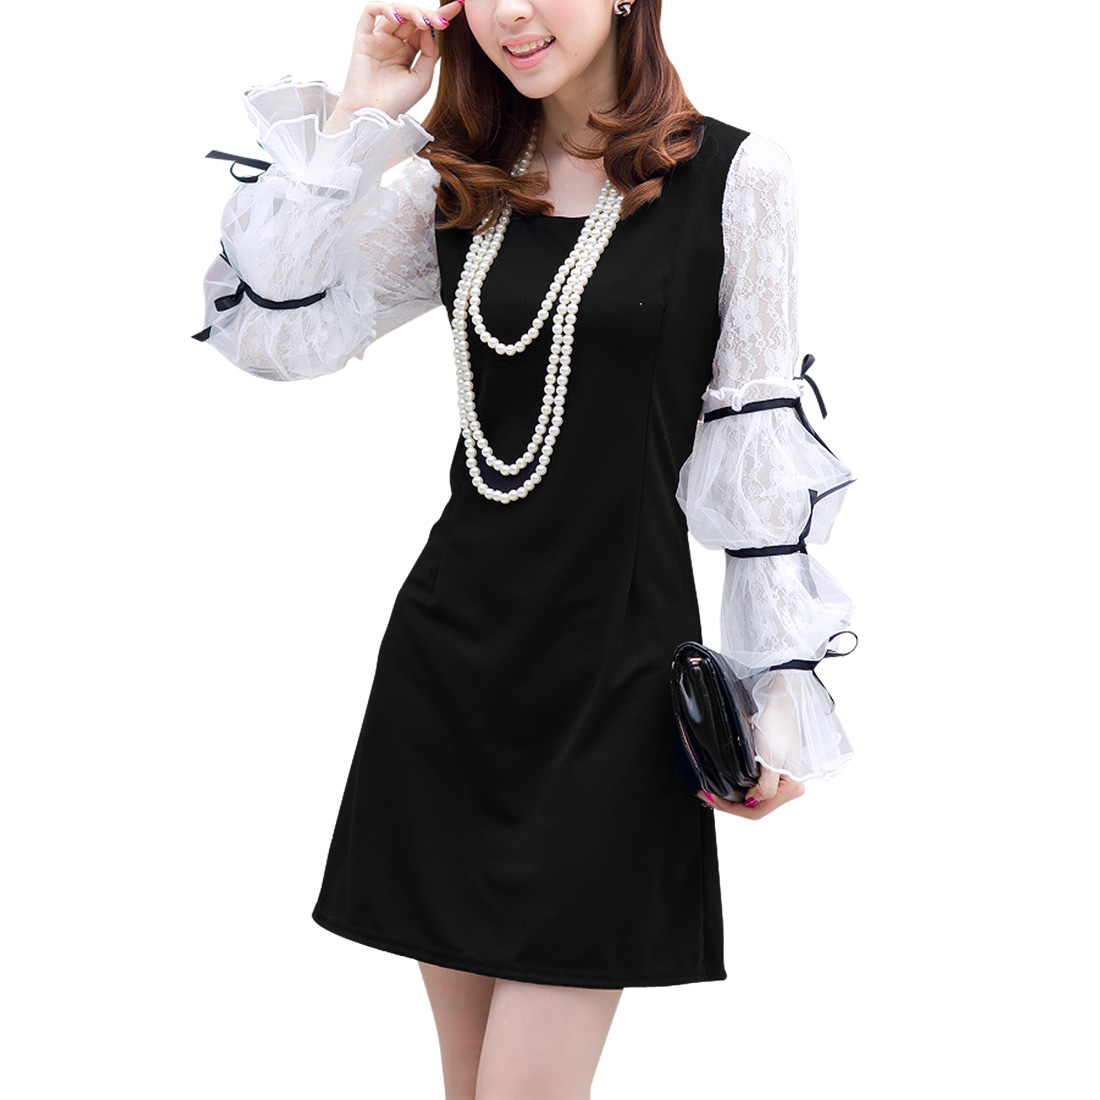 Women Lace Splicing Long Sleeve Scoop Neck Black White A Line Dress S